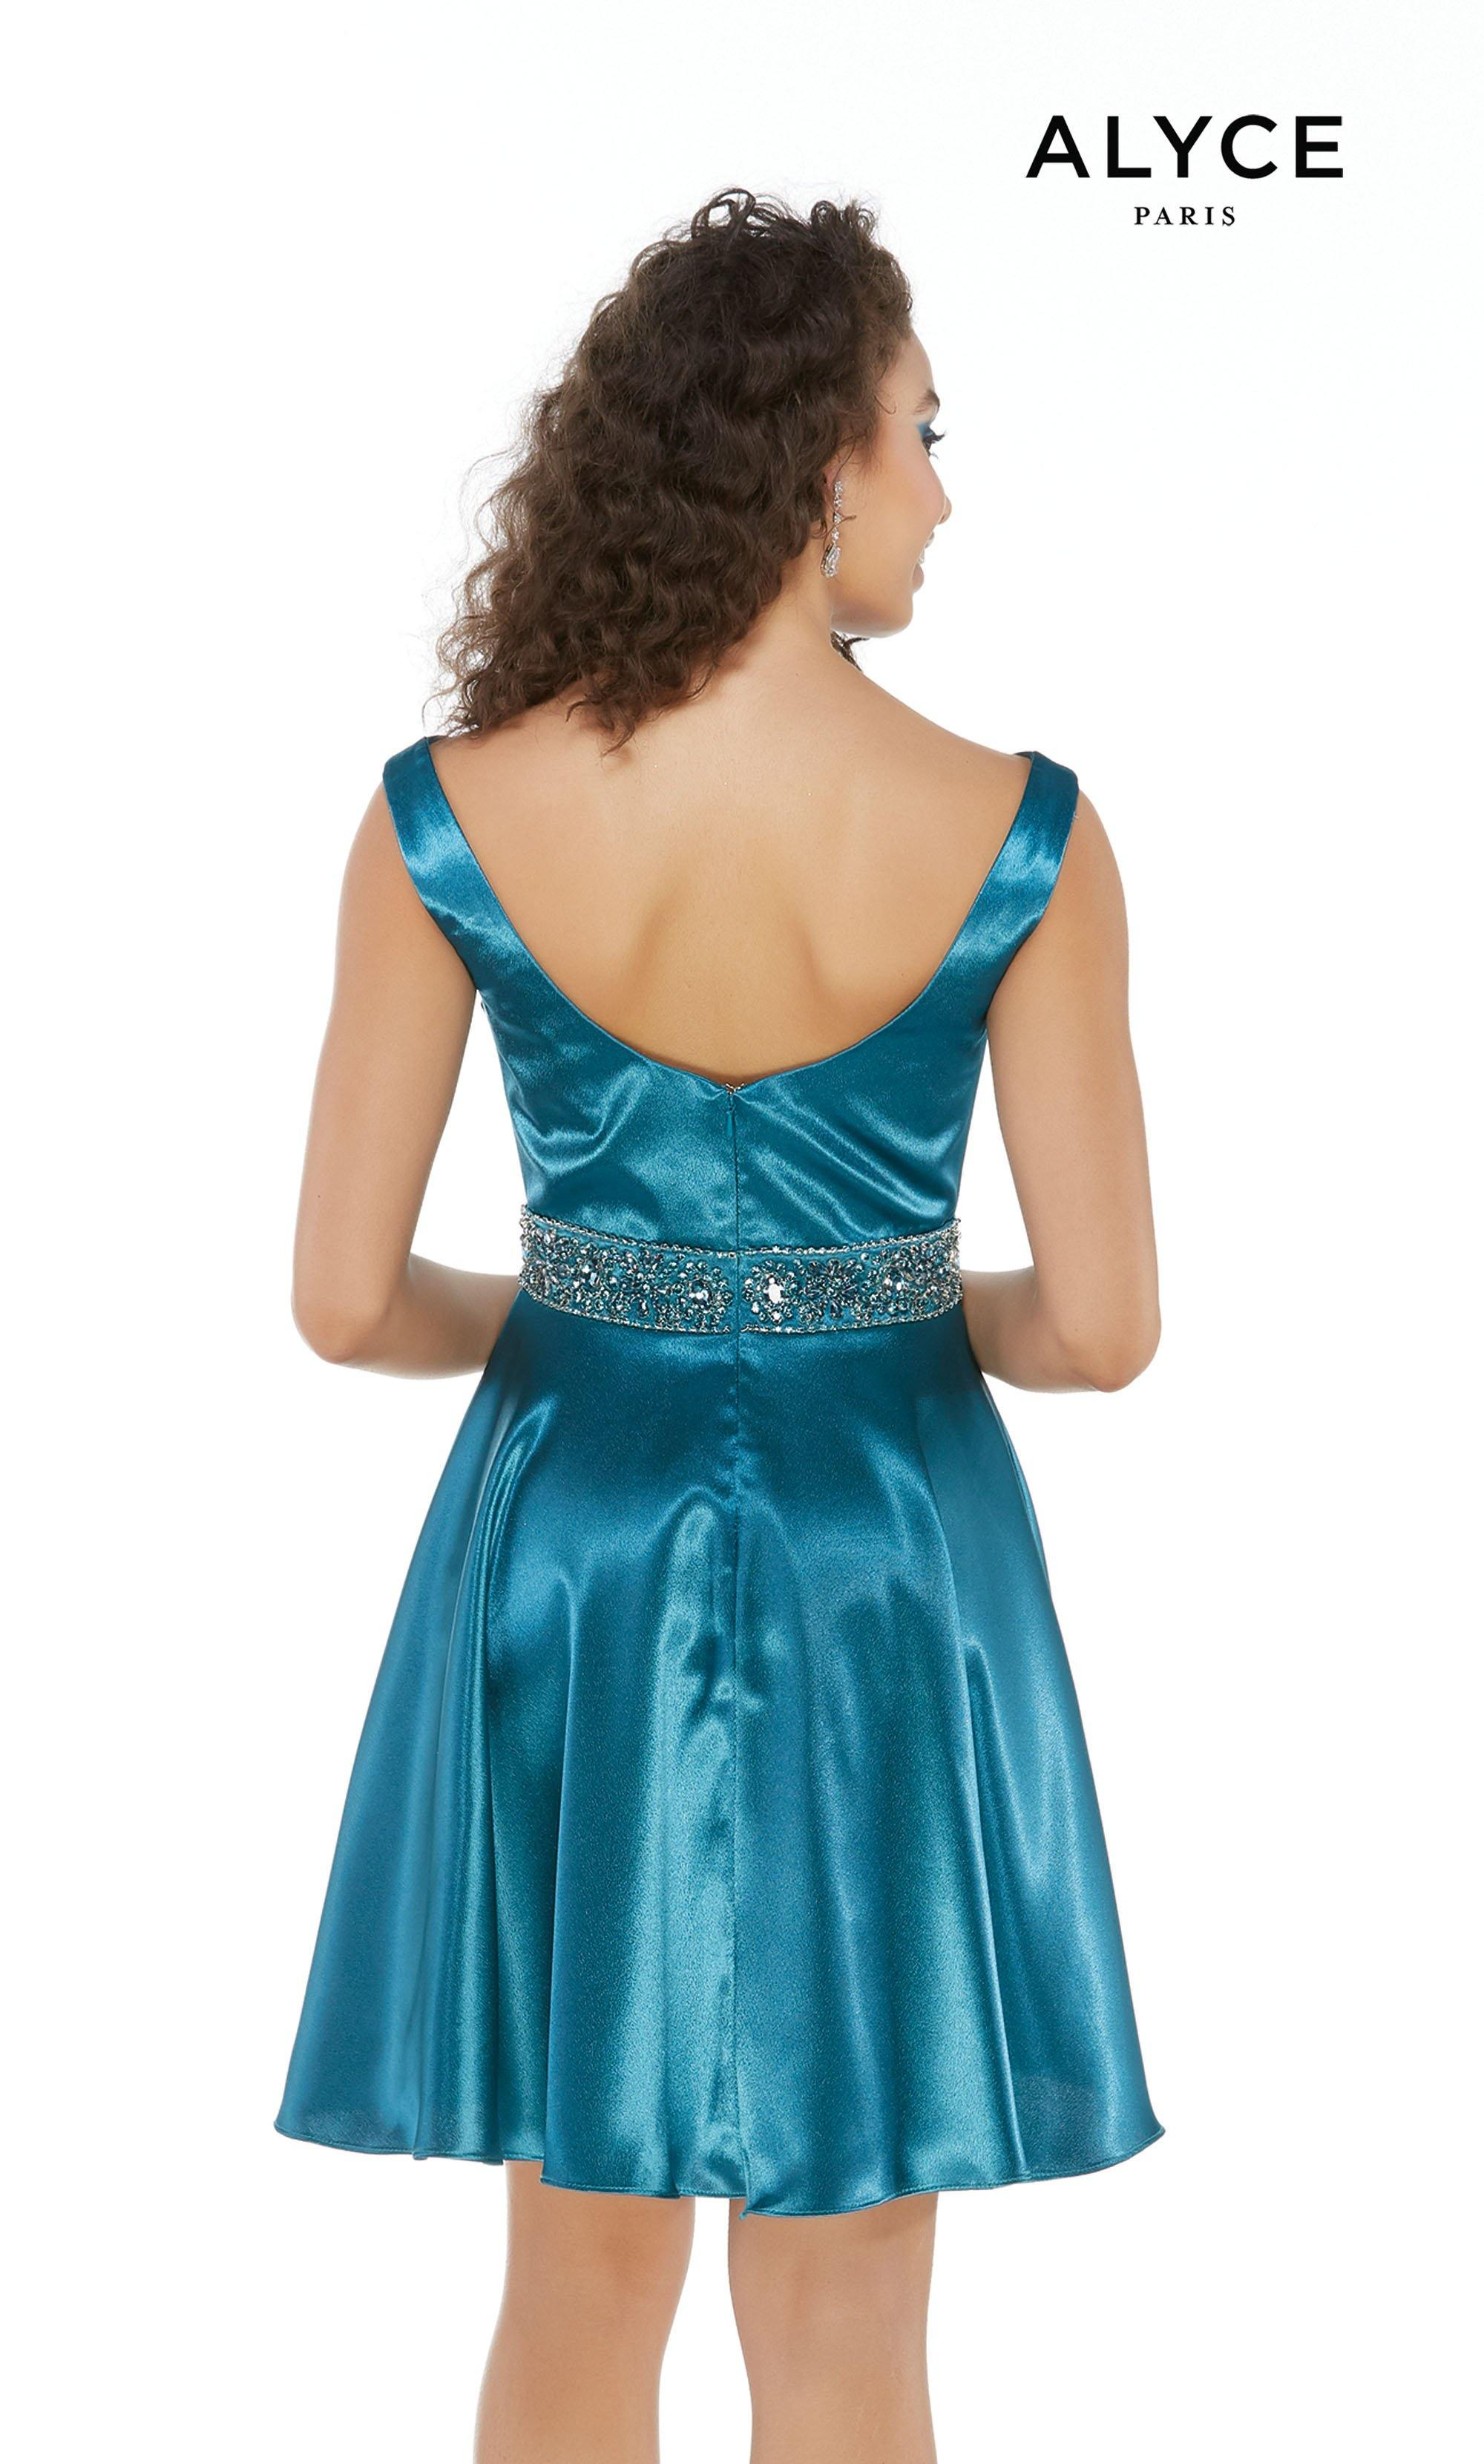 Short Dragonfly colored satin semi-formal dress with a bateau neckline and a beaded belt